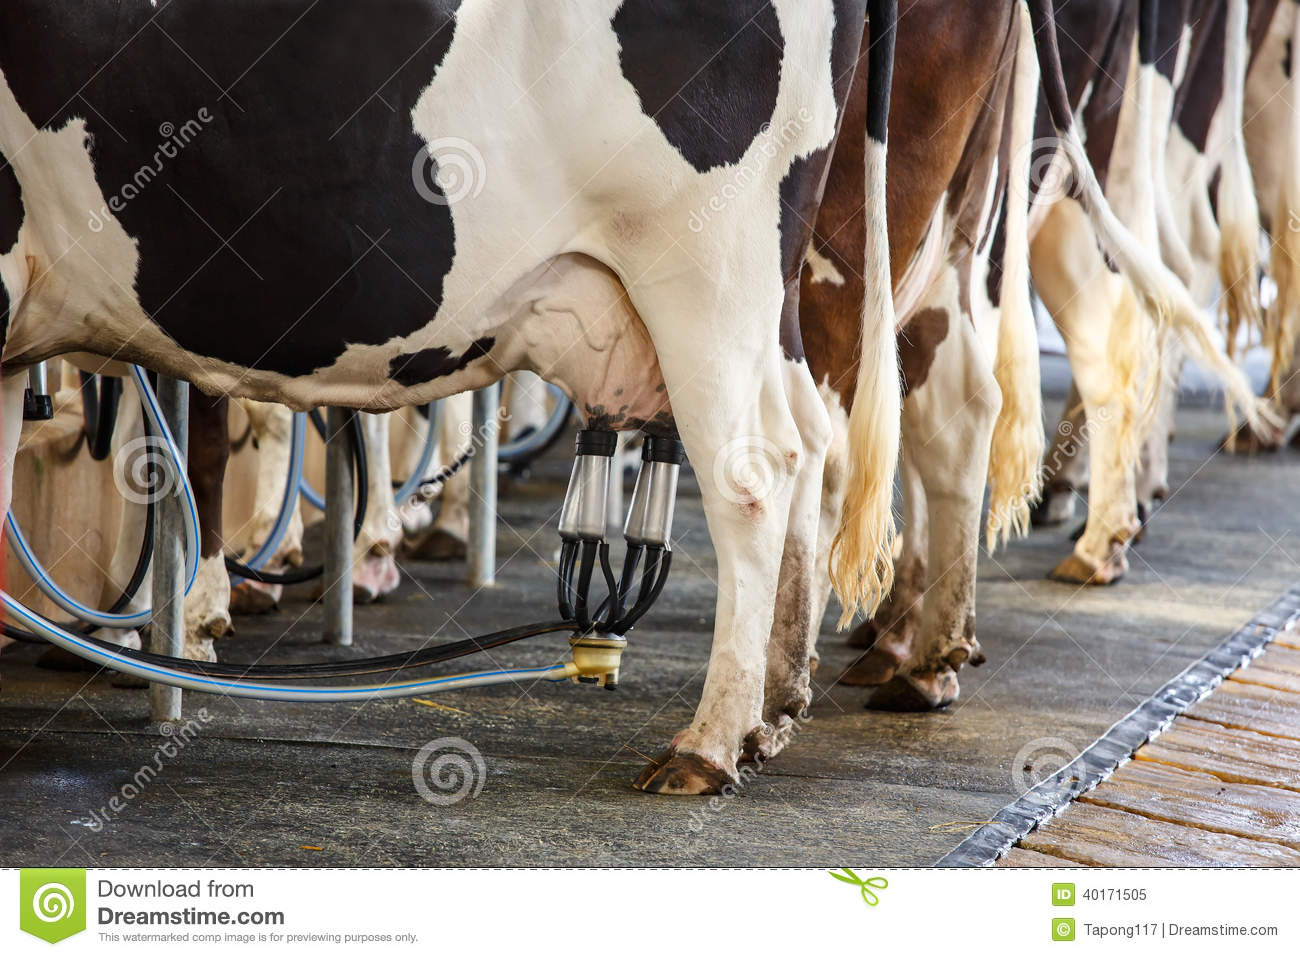 Cow milking facility